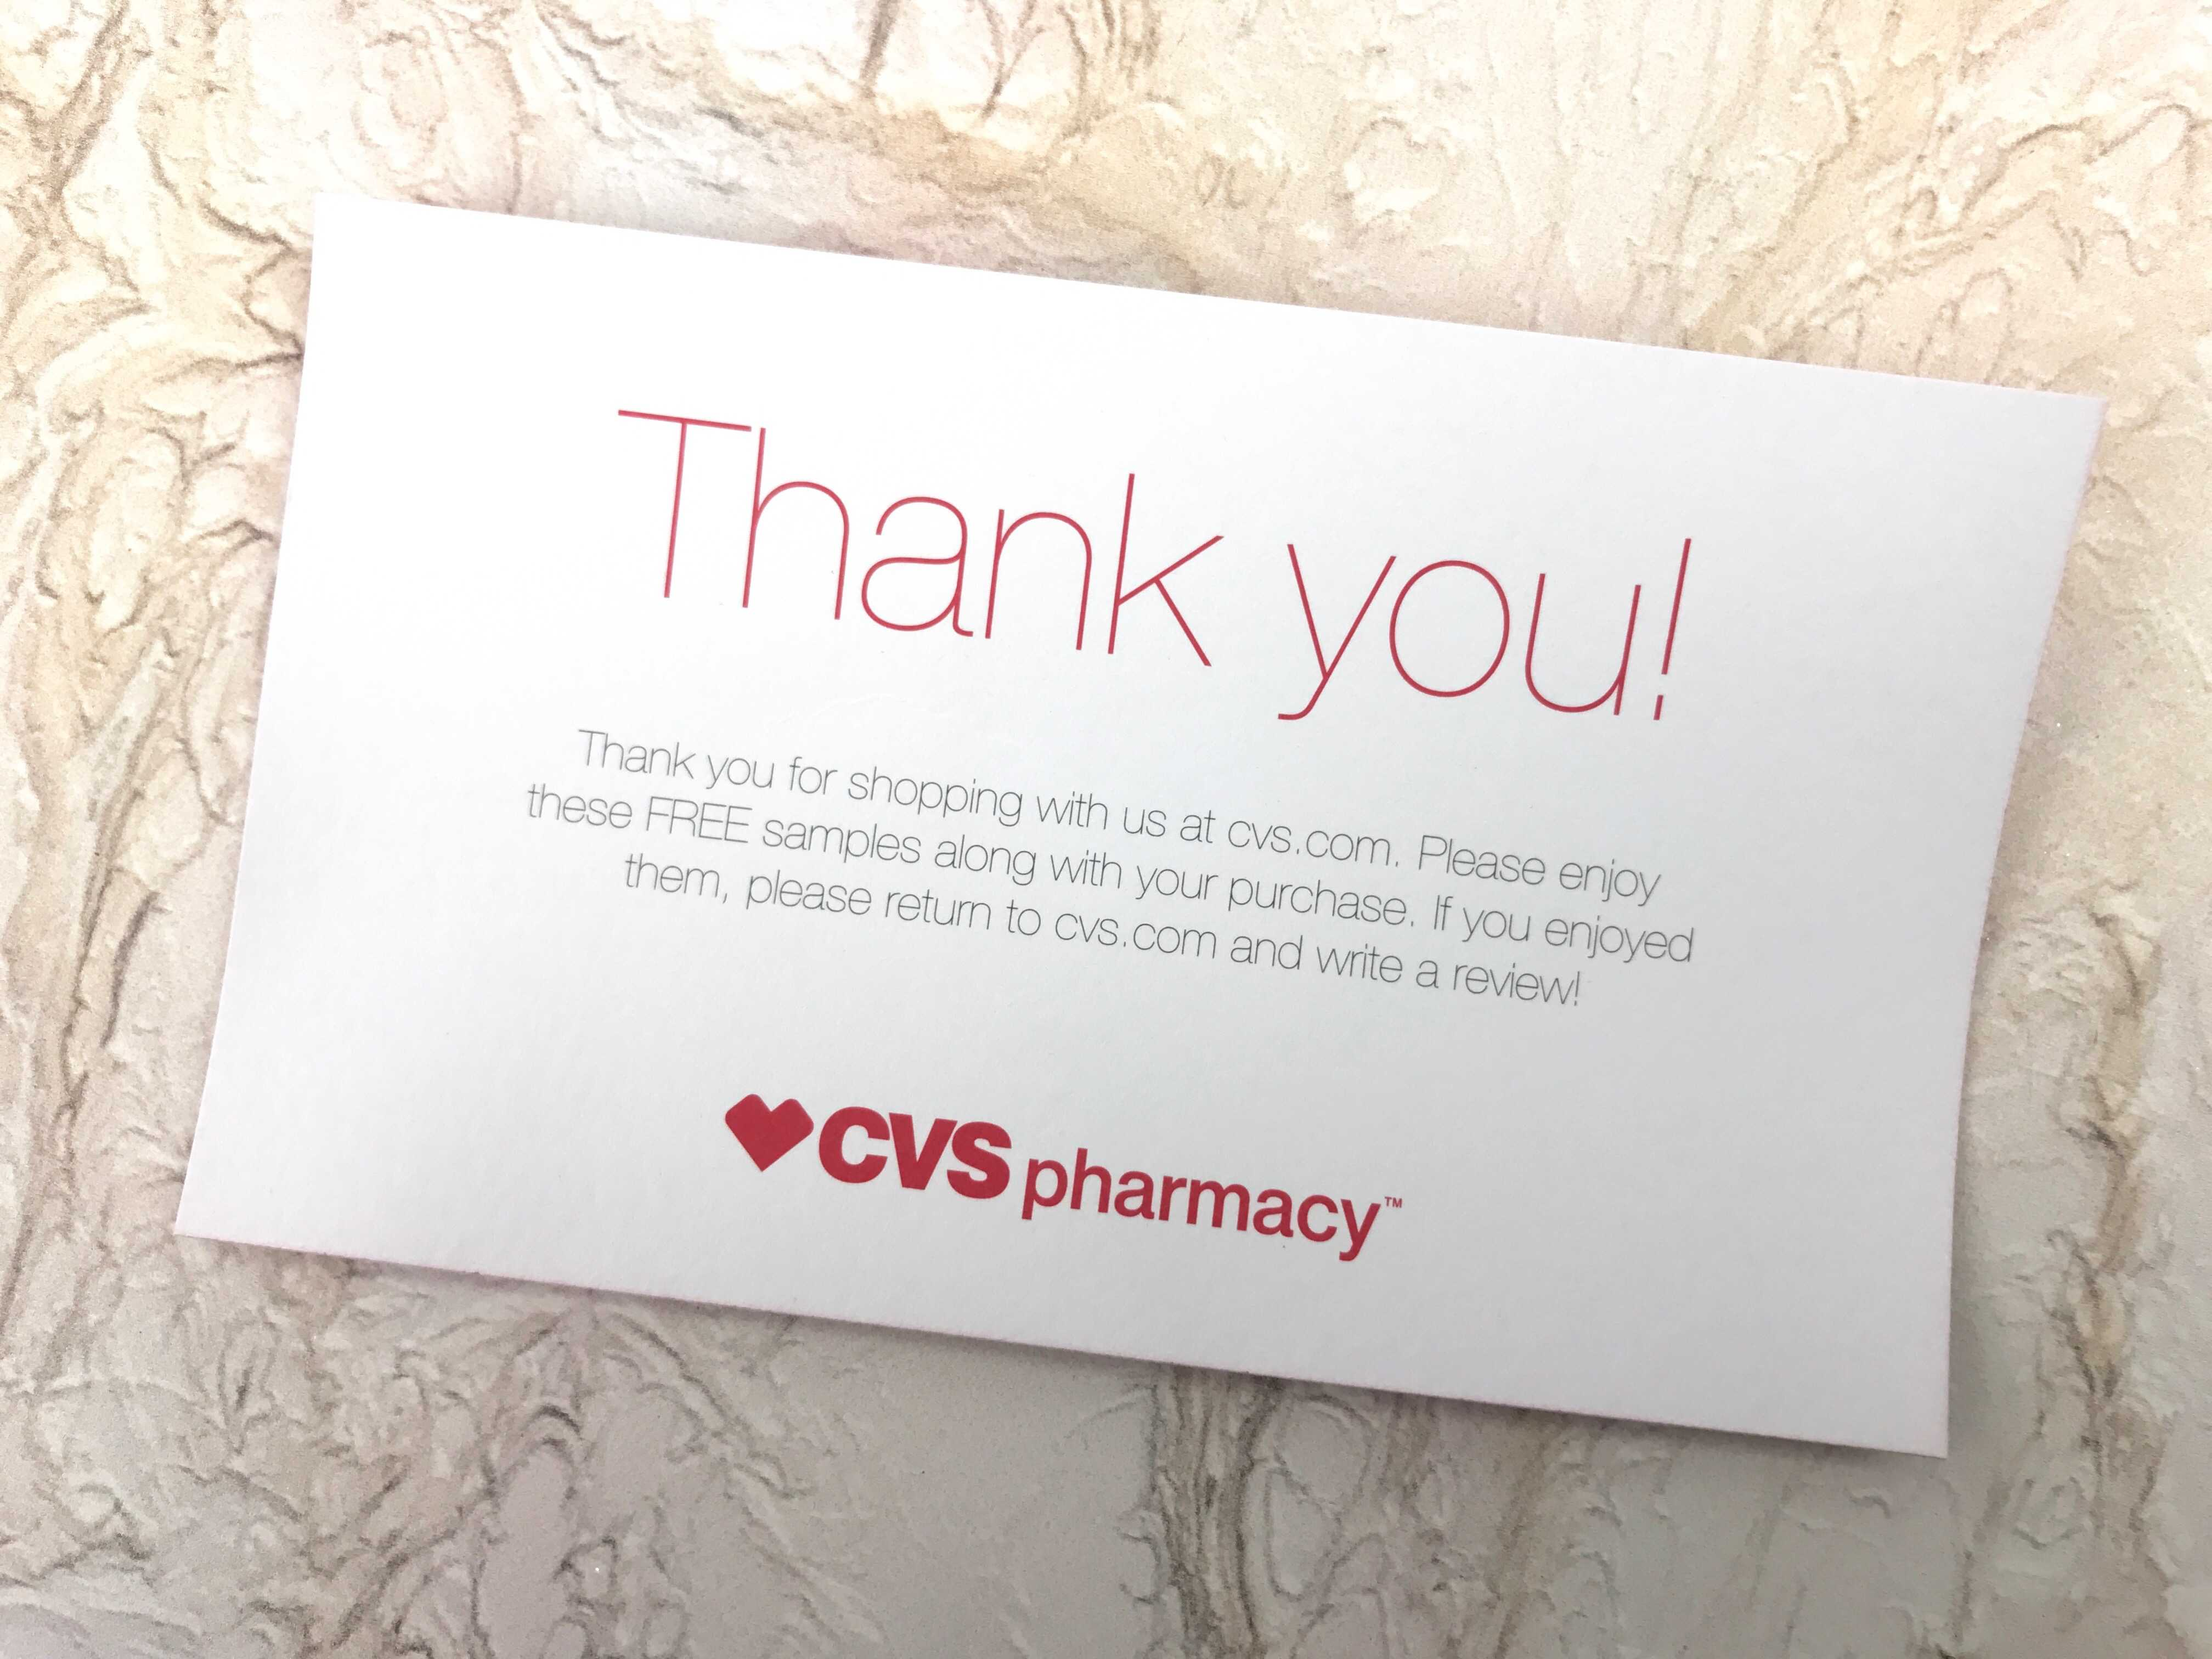 cvs sample pack review - december 2016